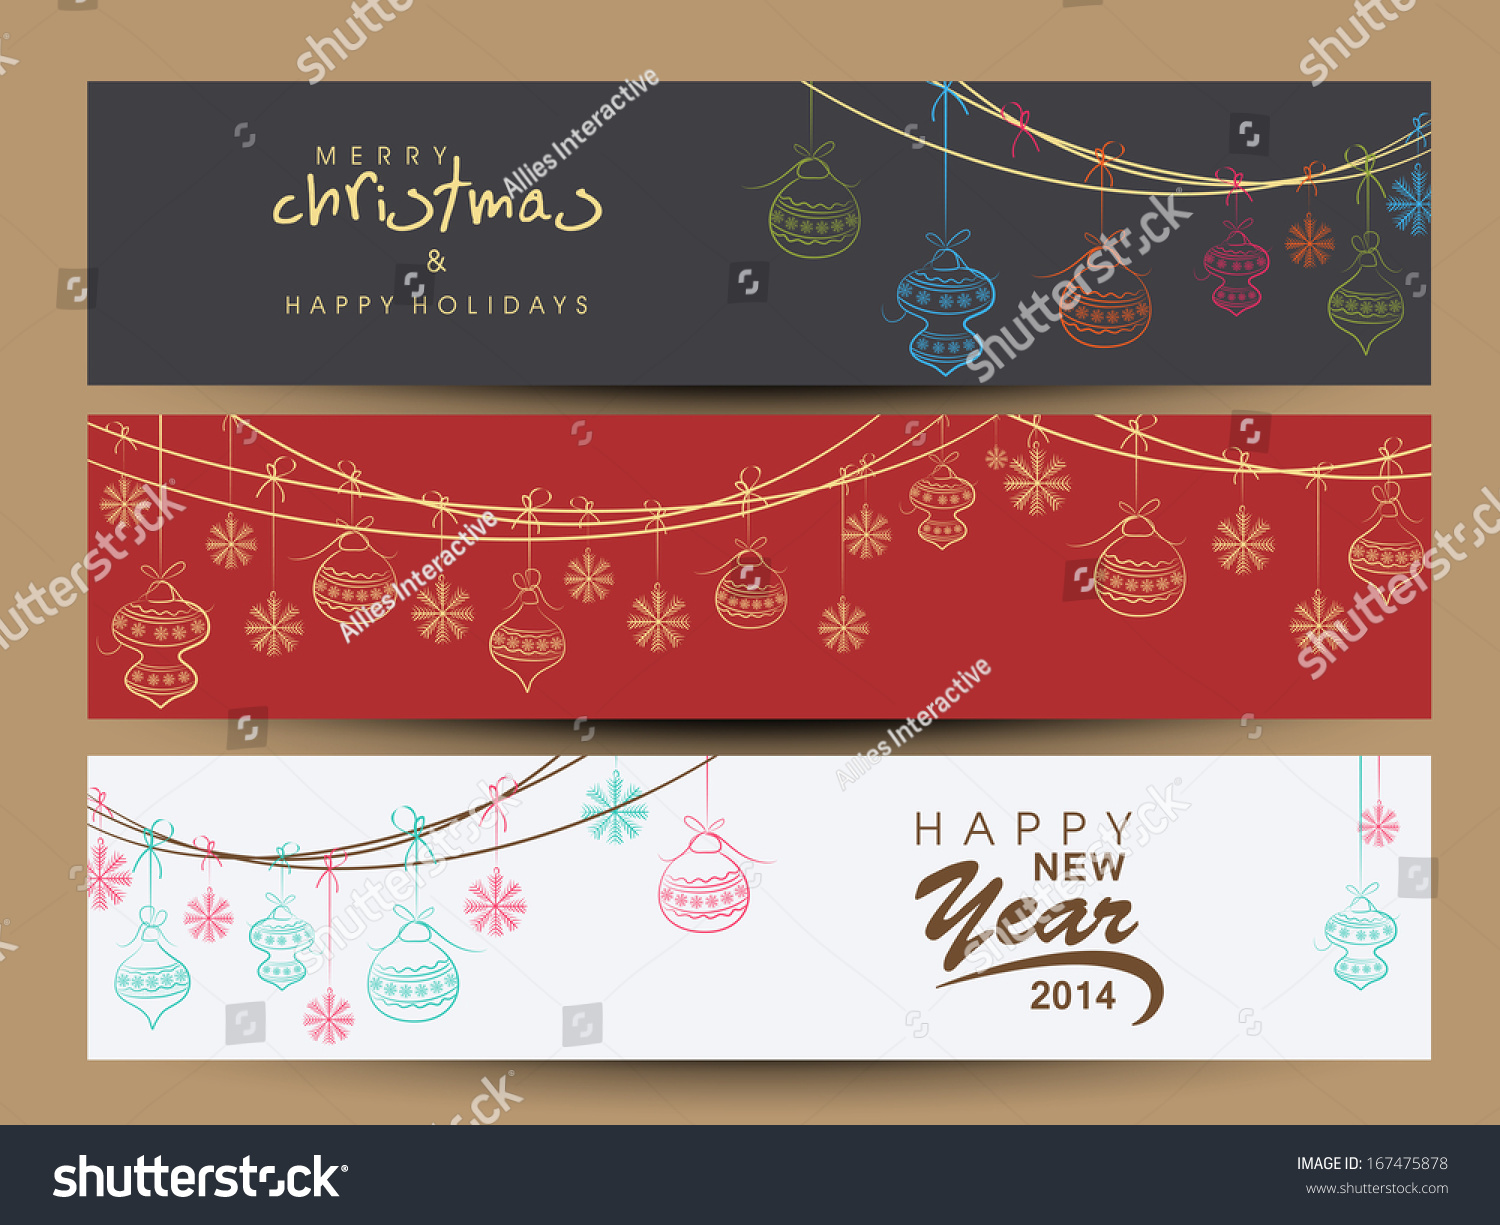 website header or banner set design for happy new year 2014 and merry christmas celebration with